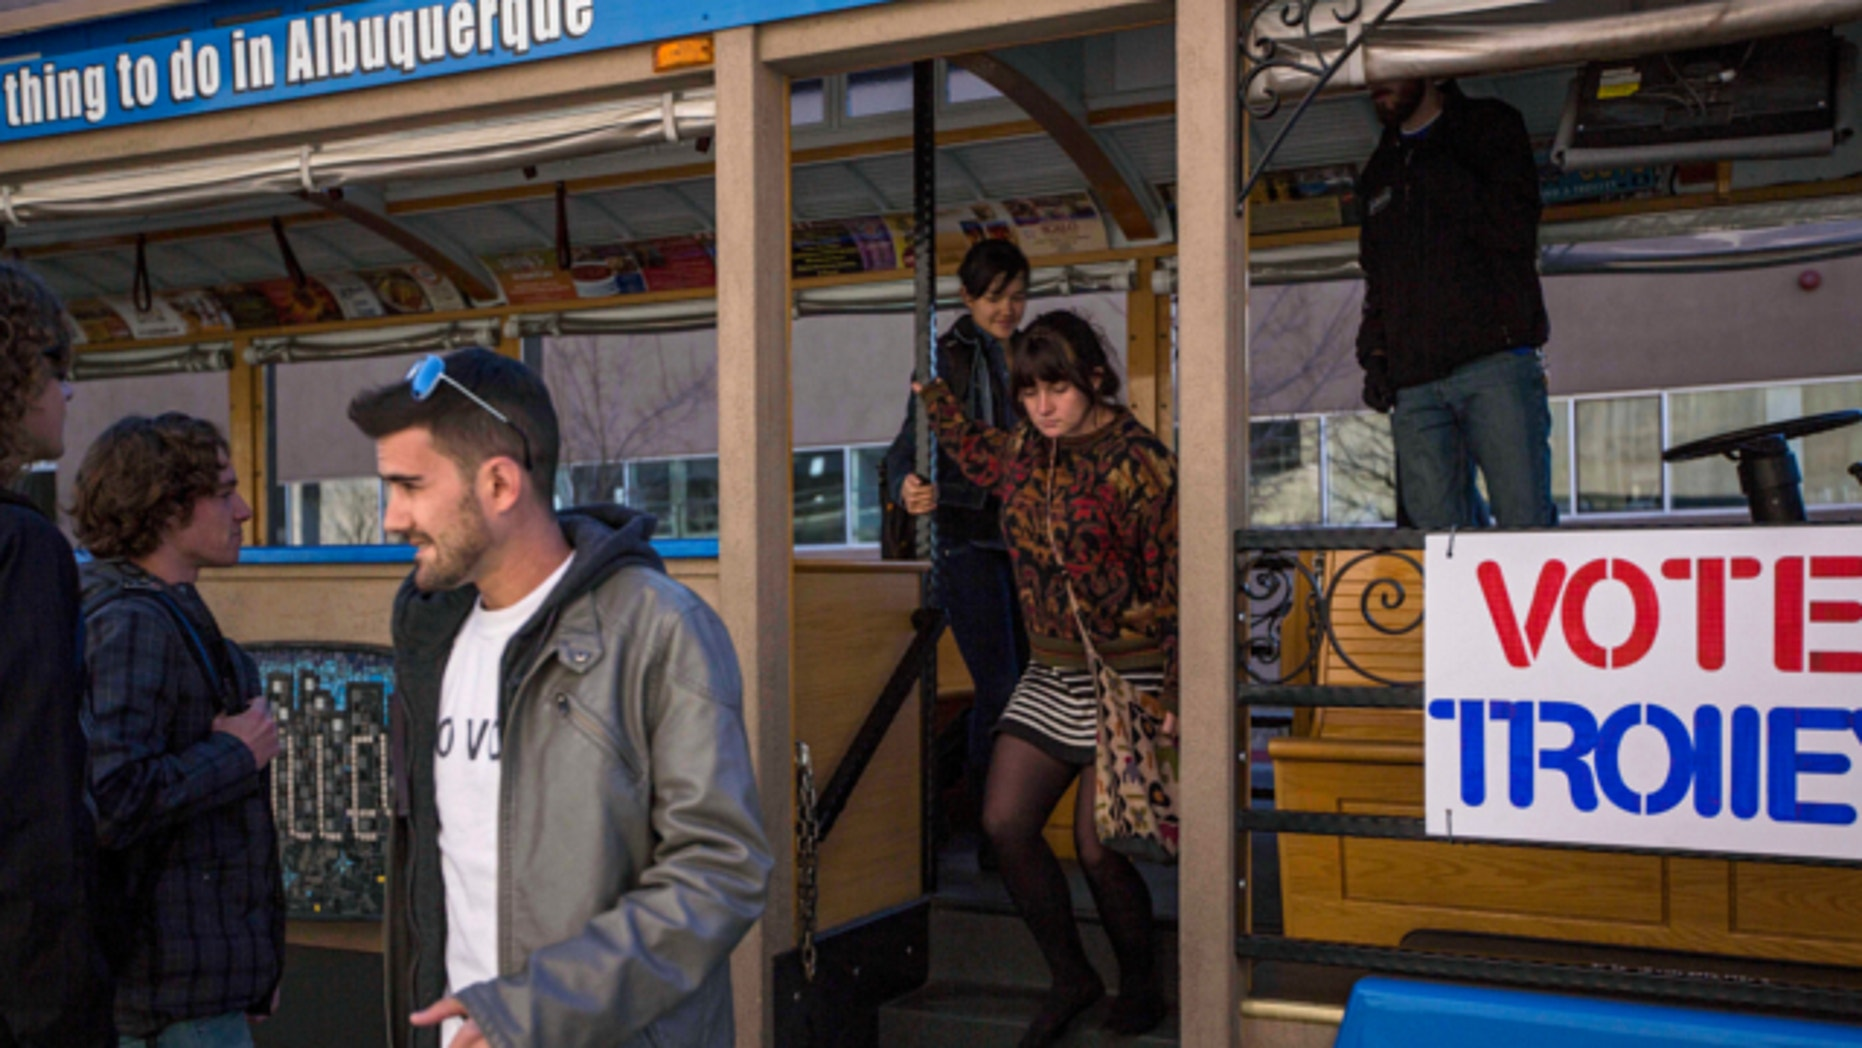 """Nov. 14, 2013: University of New Mexico students exit the """"Voting Trolly"""" at a stop on campus in Albuquerque, N.M."""